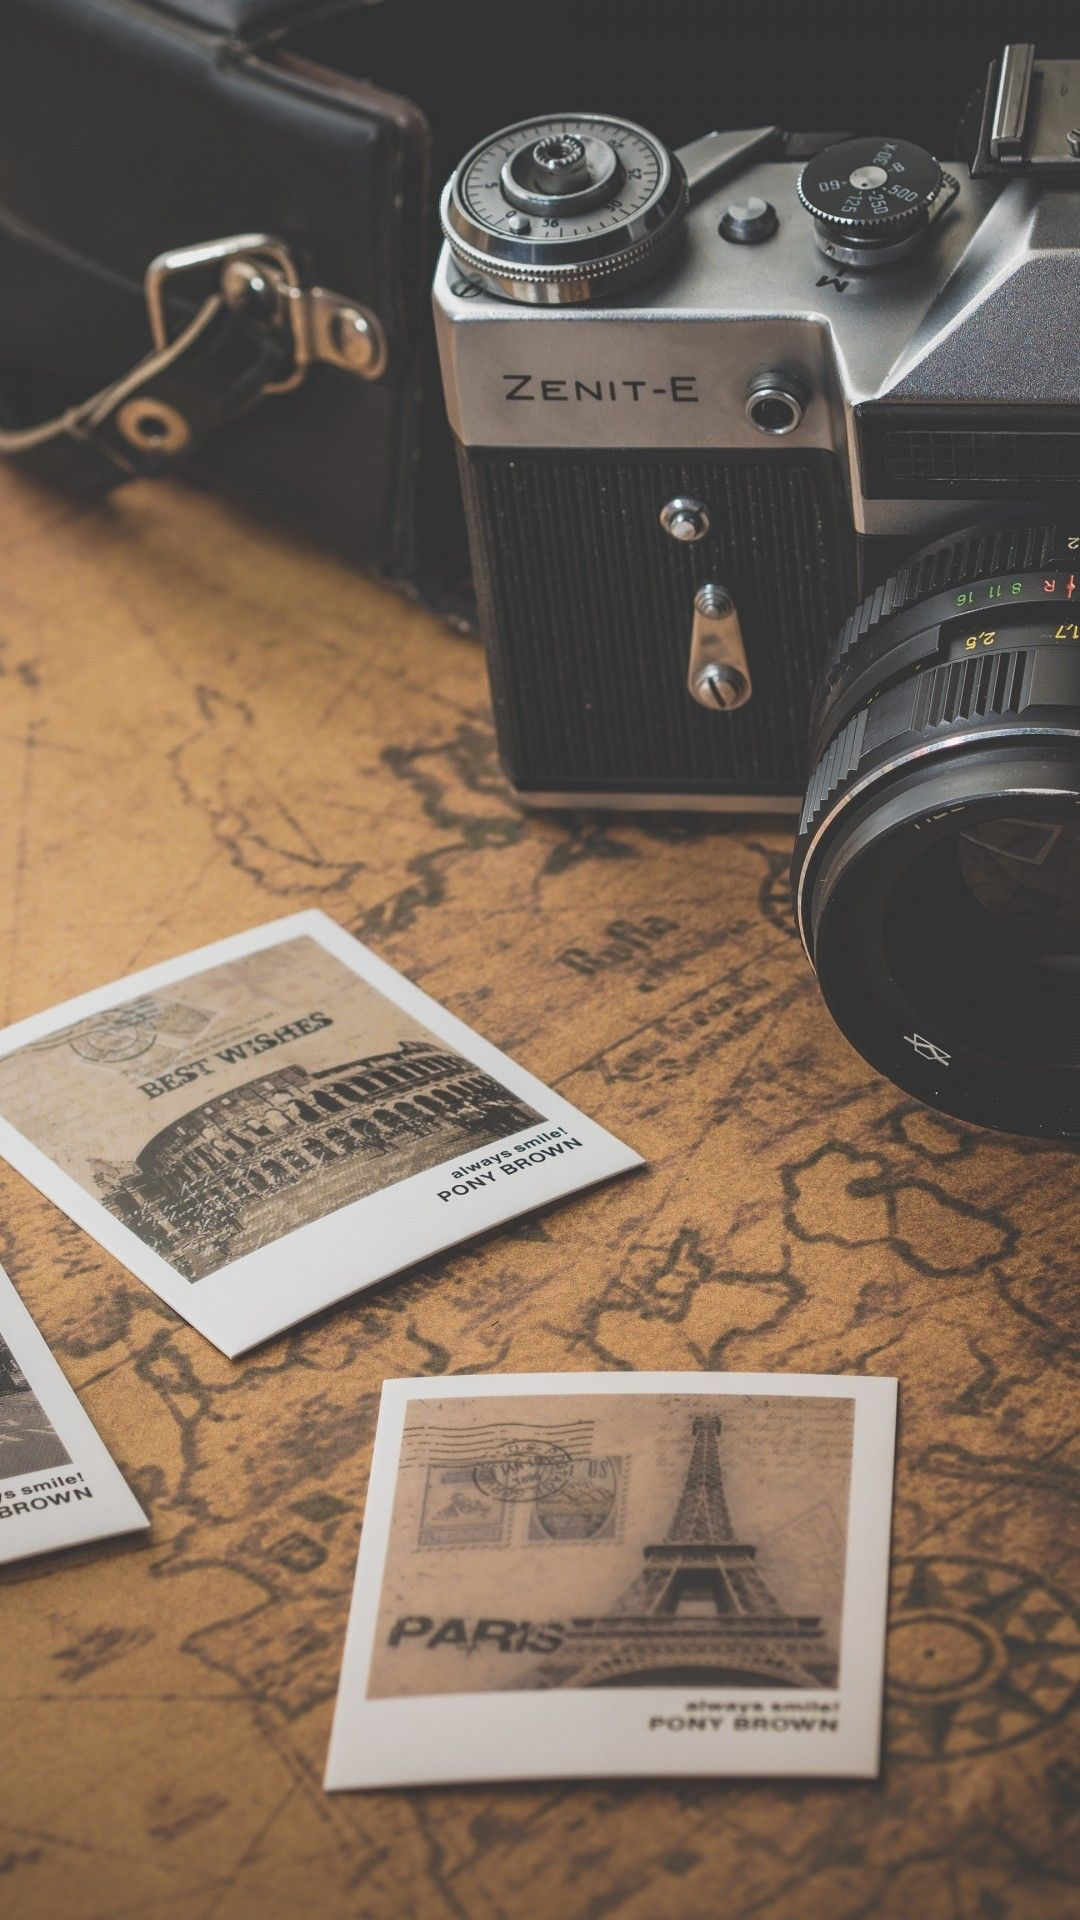 Vintage Wallpaper Full Hd Hupages Download Iphone Wallpapers Camera Wallpaper Photography Camera Vintage Cameras